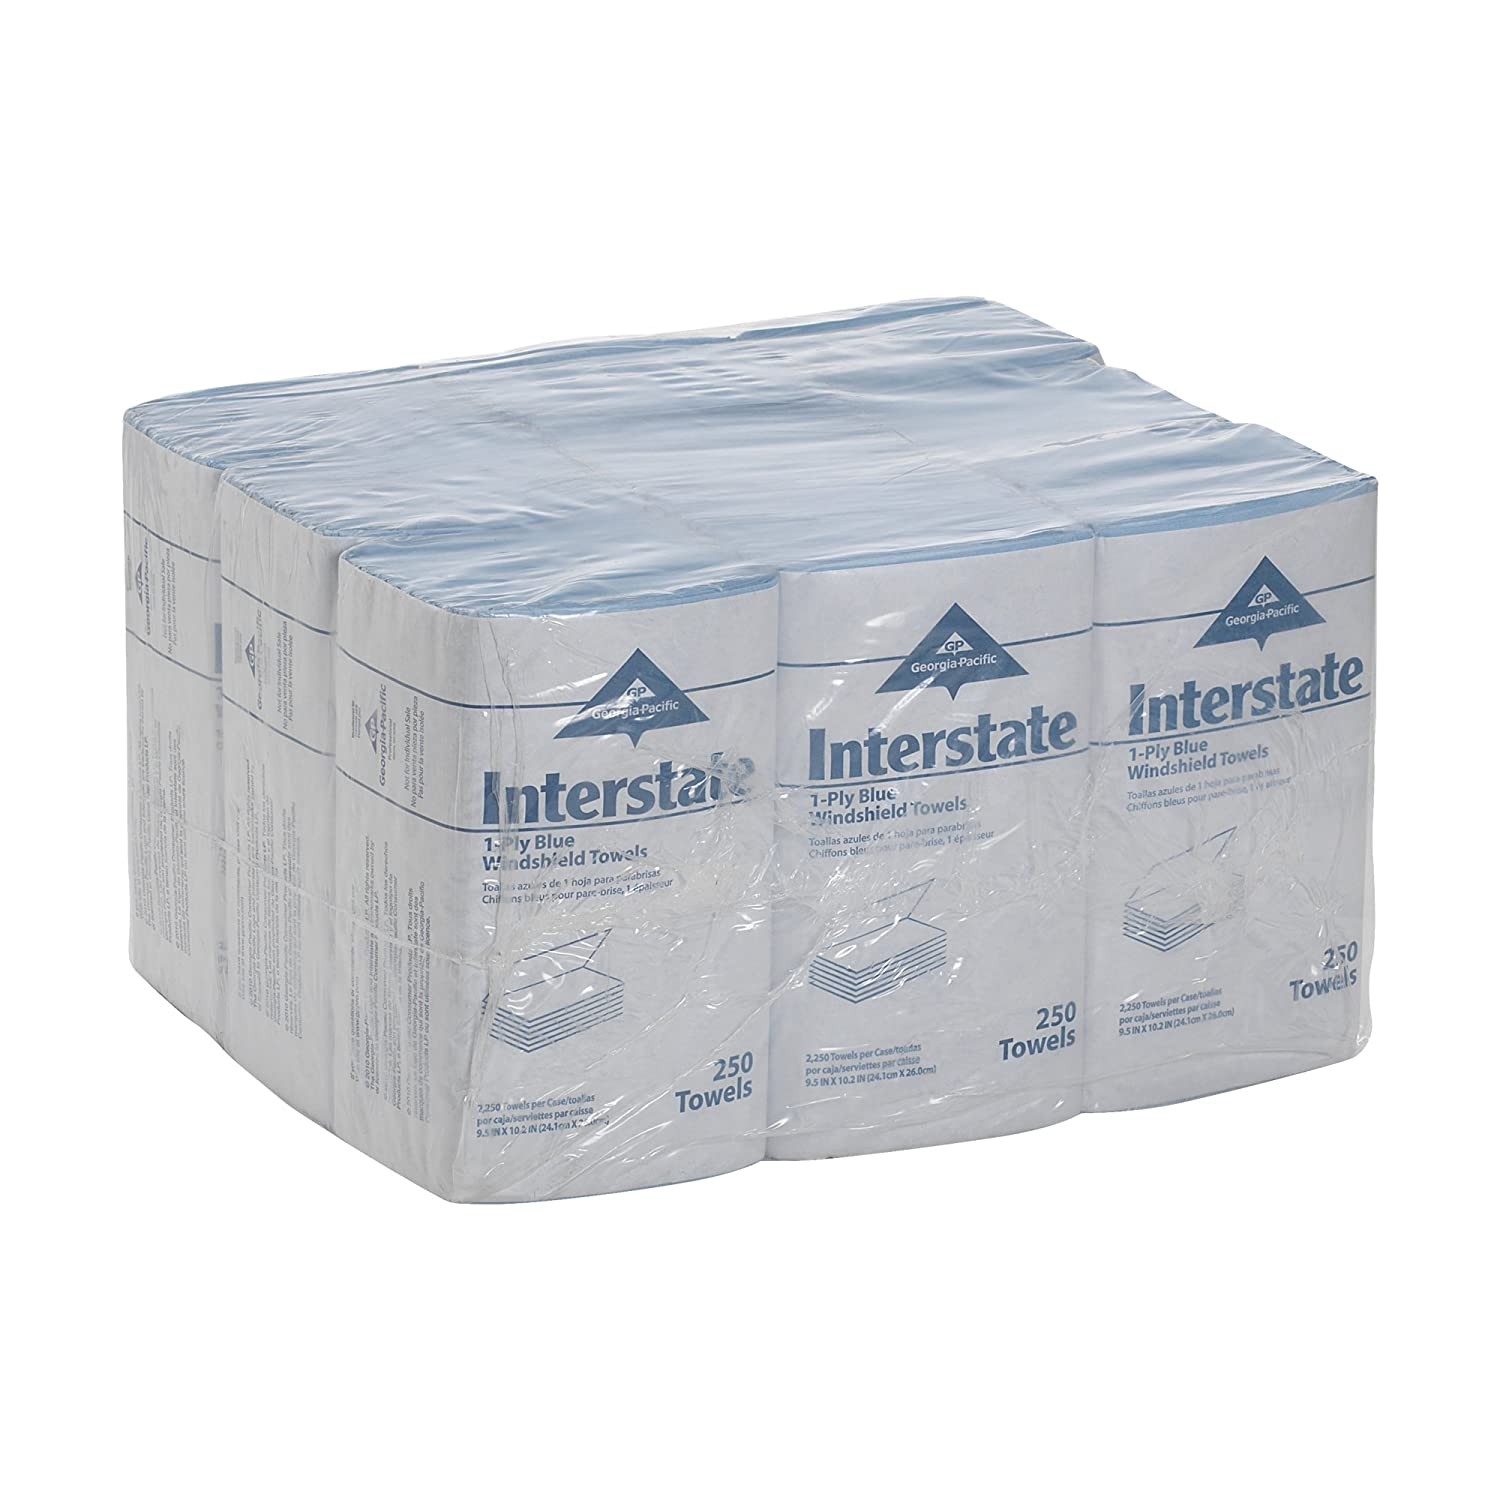 Interstate® Windshield Towels by GEORGIA PACIFIC, 1-PLY, AUTO WIPES, BLUE, GPC02350: Paper Towels: Amazon.com: Industrial & Scientific